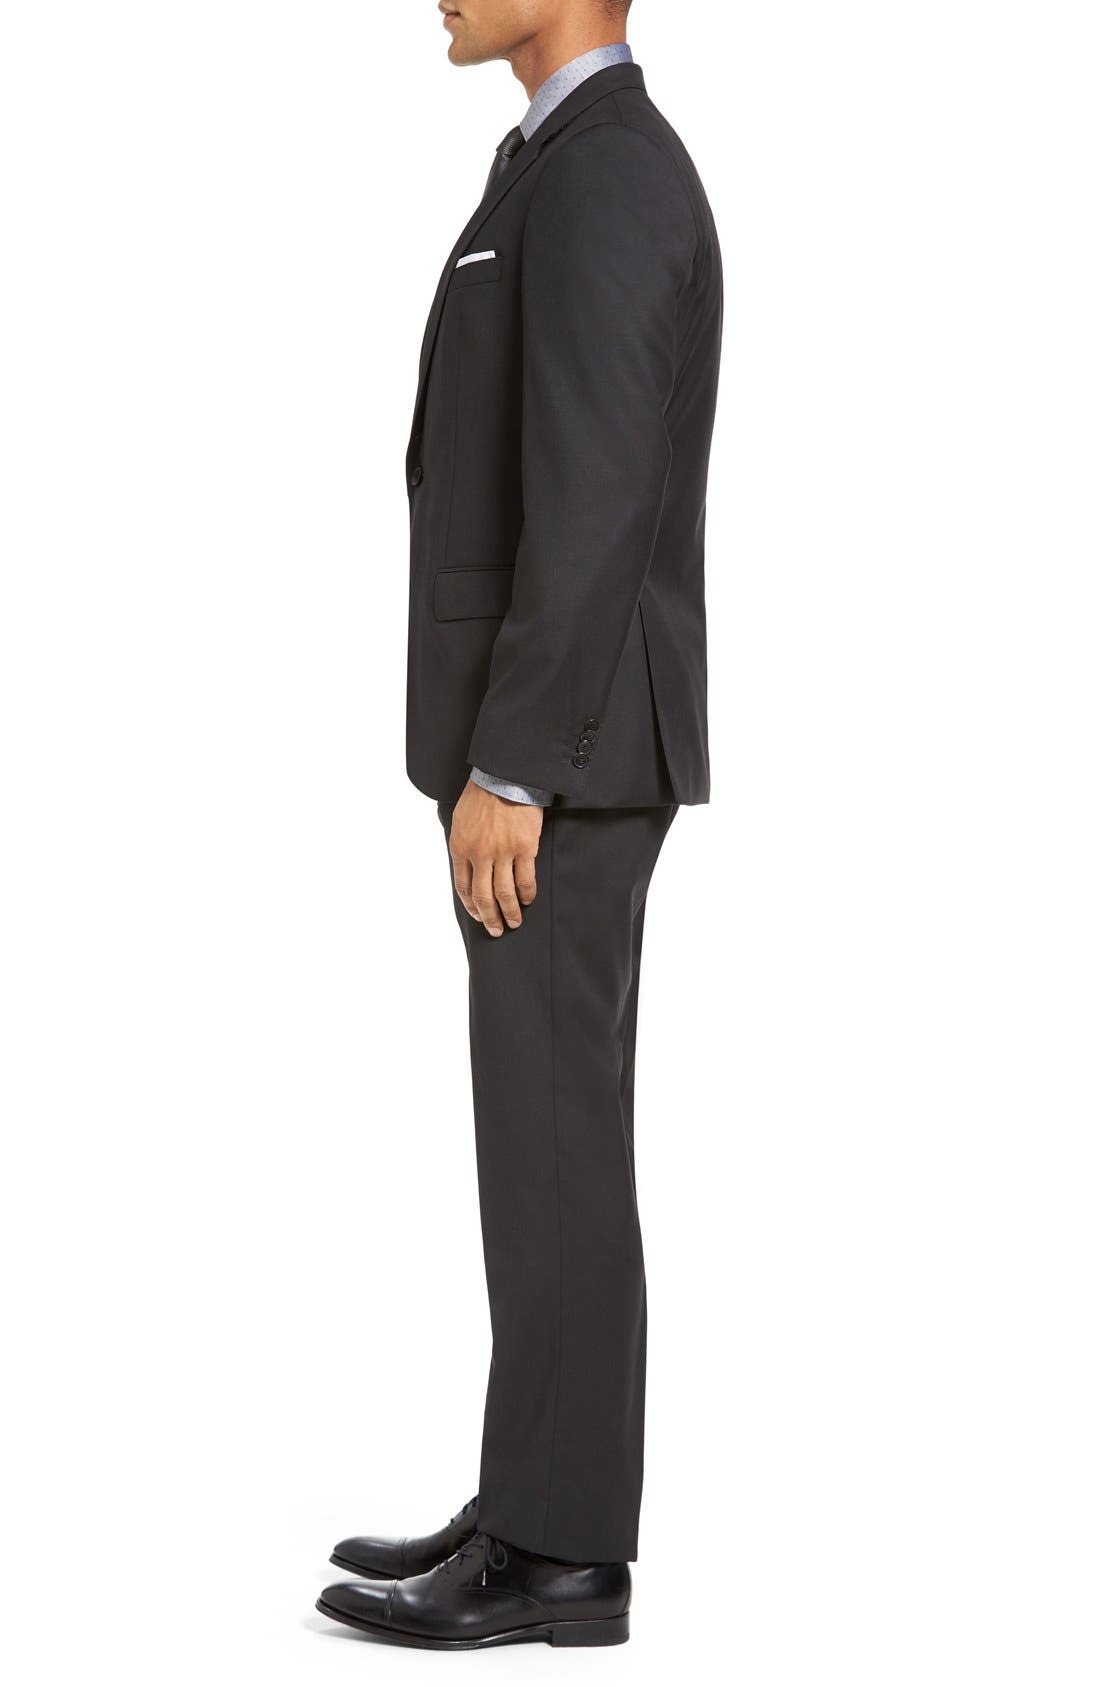 Huge/Genius Trim Fit Wool Suit,                             Alternate thumbnail 3, color,                             Charcoal